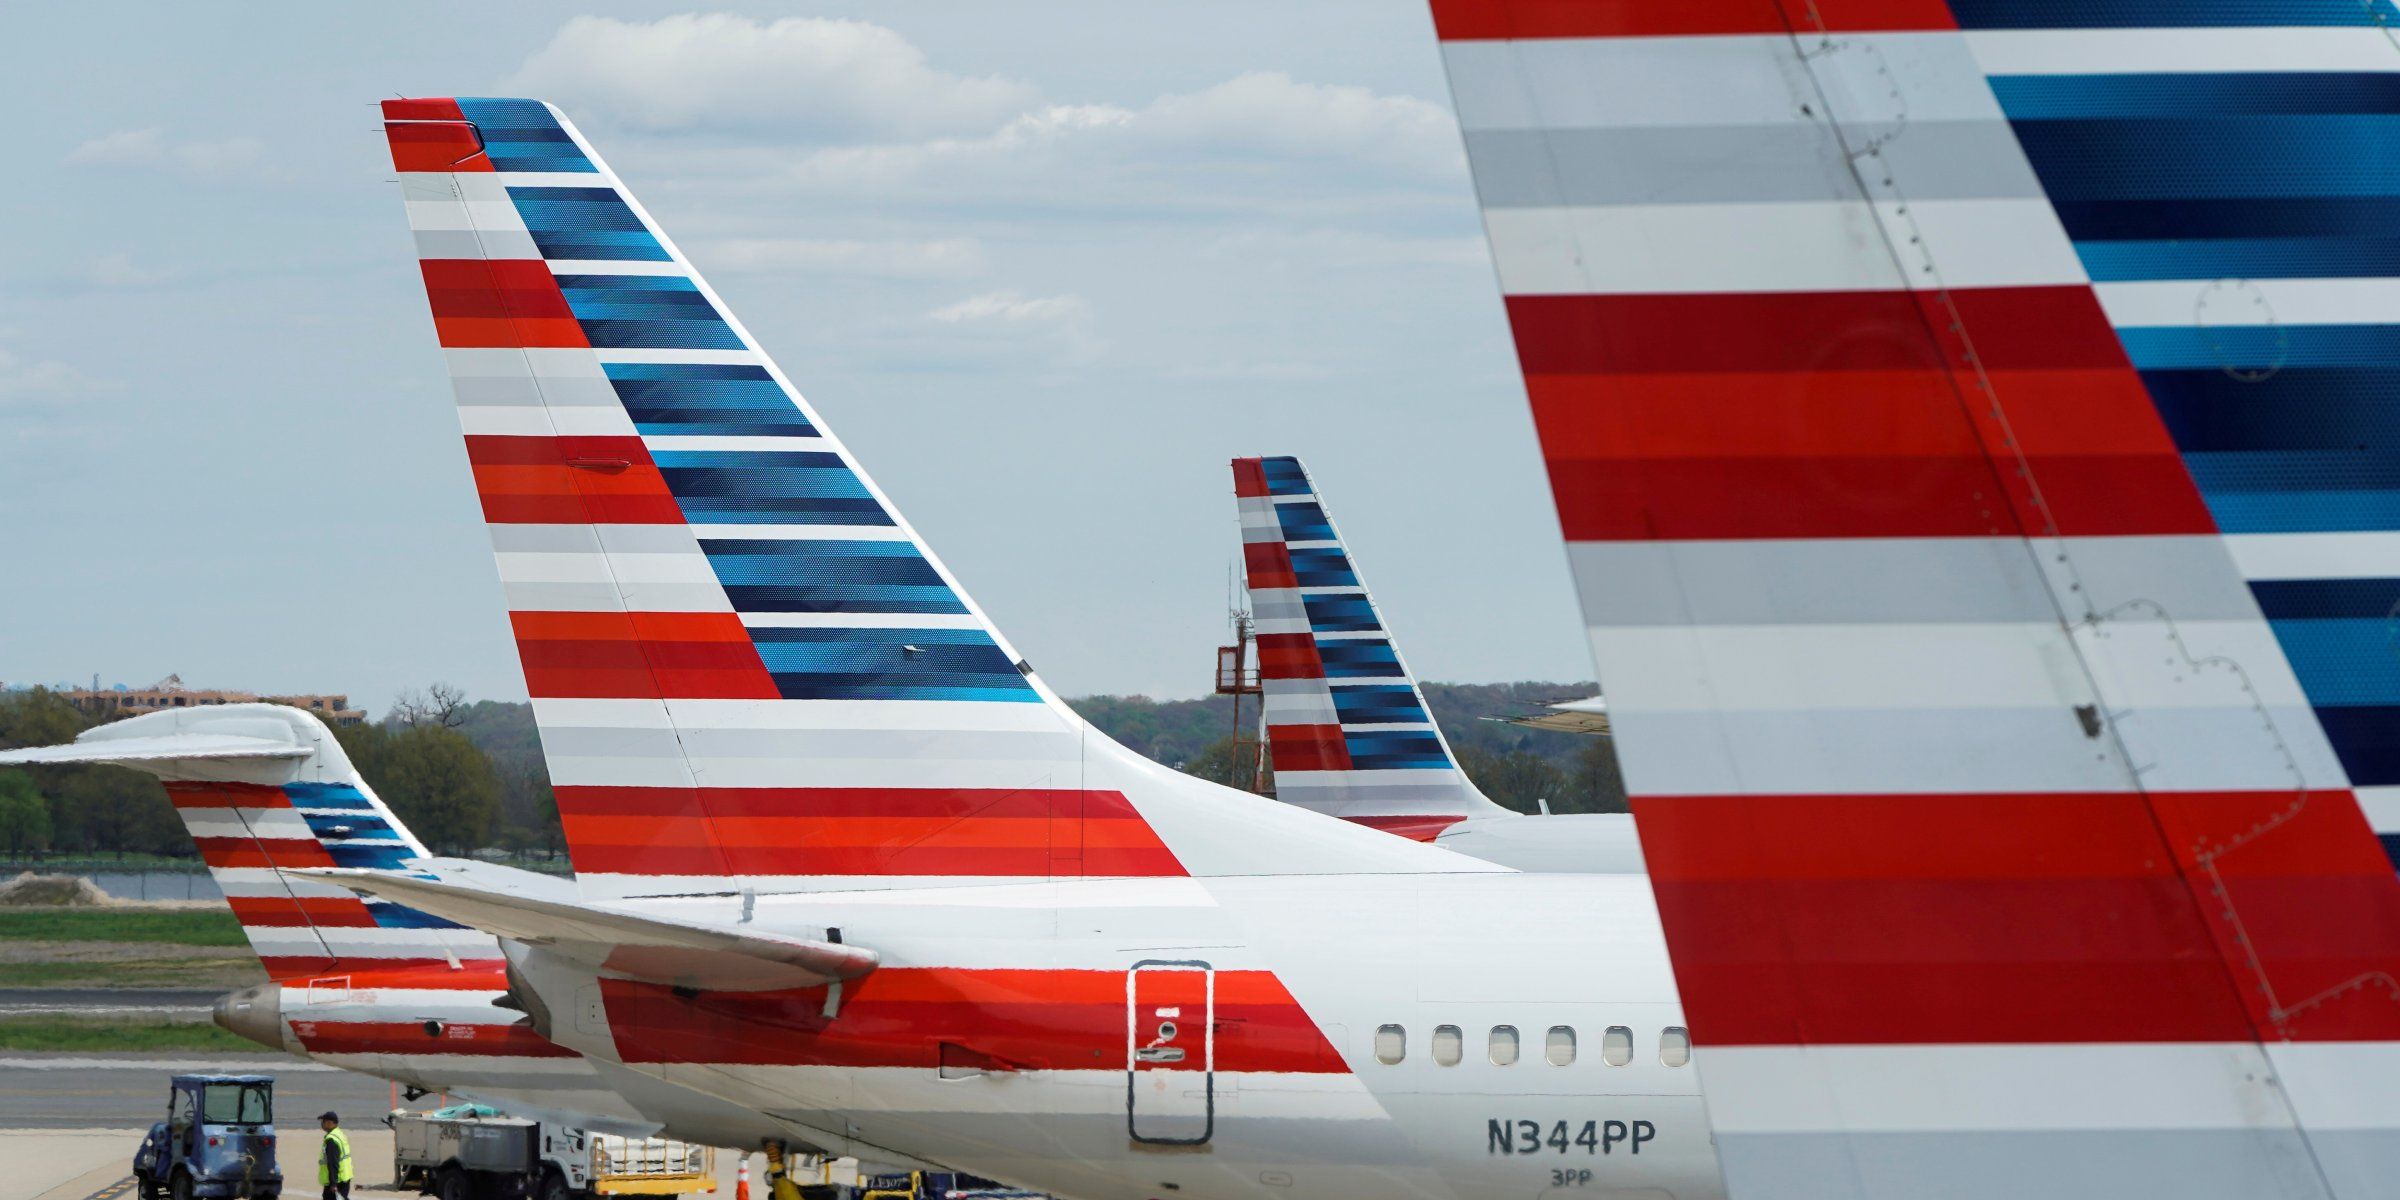 Image of article 'American Airlines to lay off 19,000 workers in October without Congress aid'